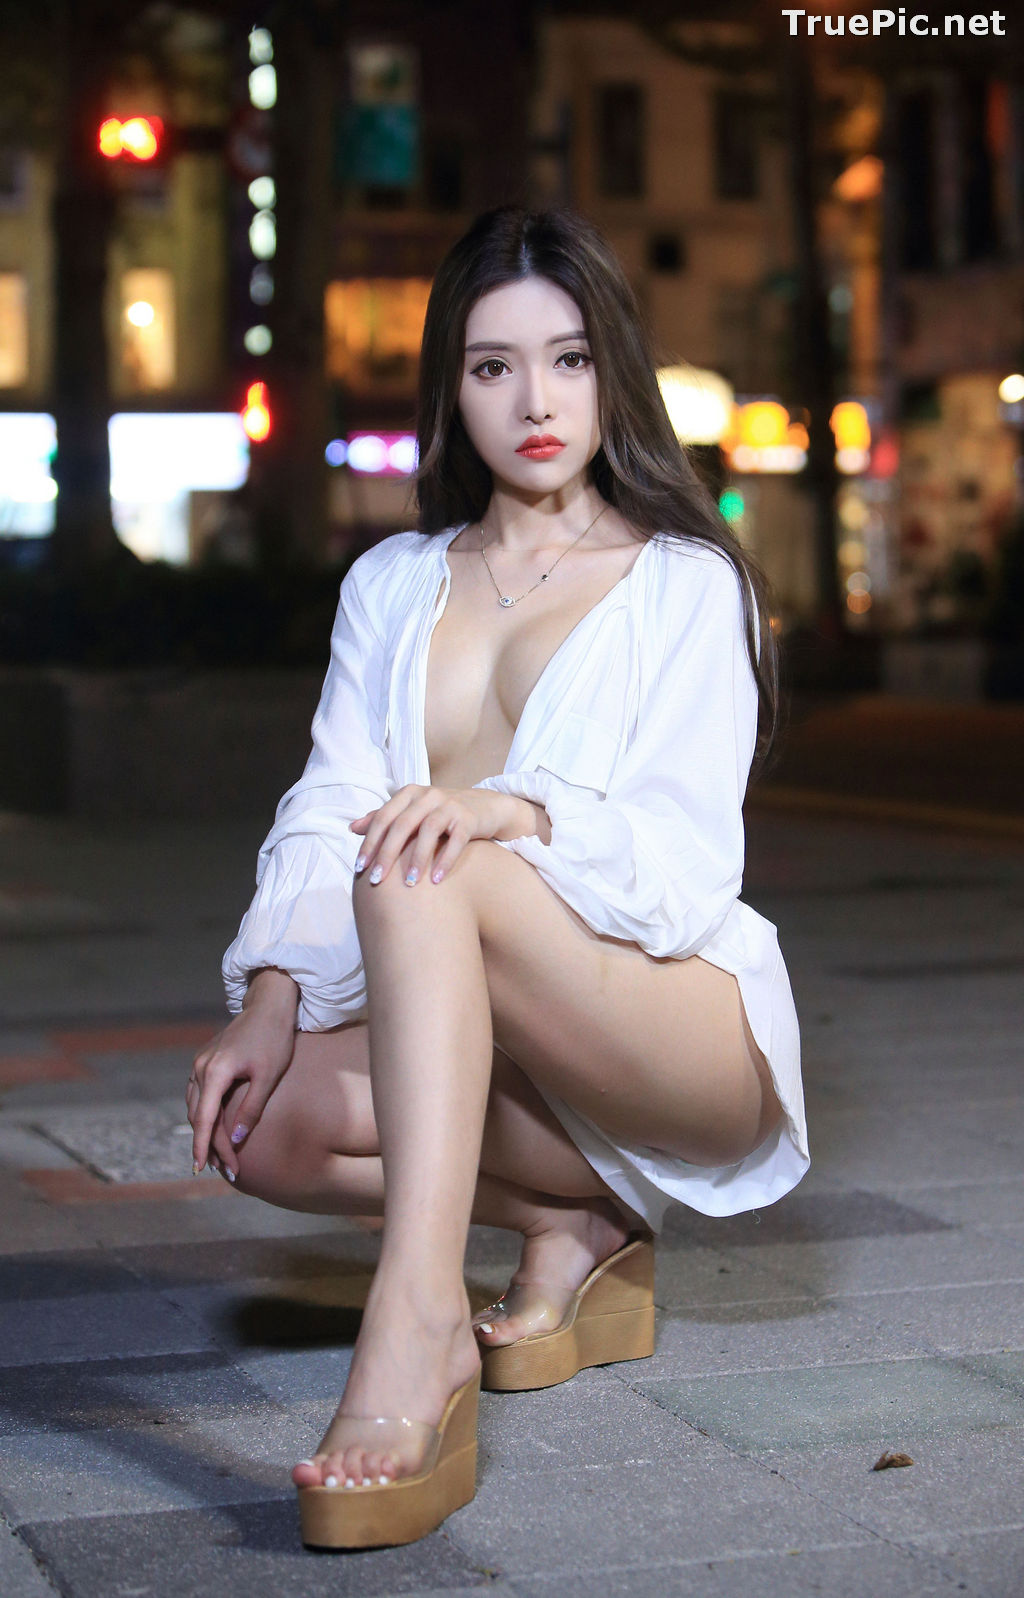 Image Taiwanese Model – 莊舒潔 (ViVi) – Sexy and Pure Baby In Night - TruePic.net - Picture-23